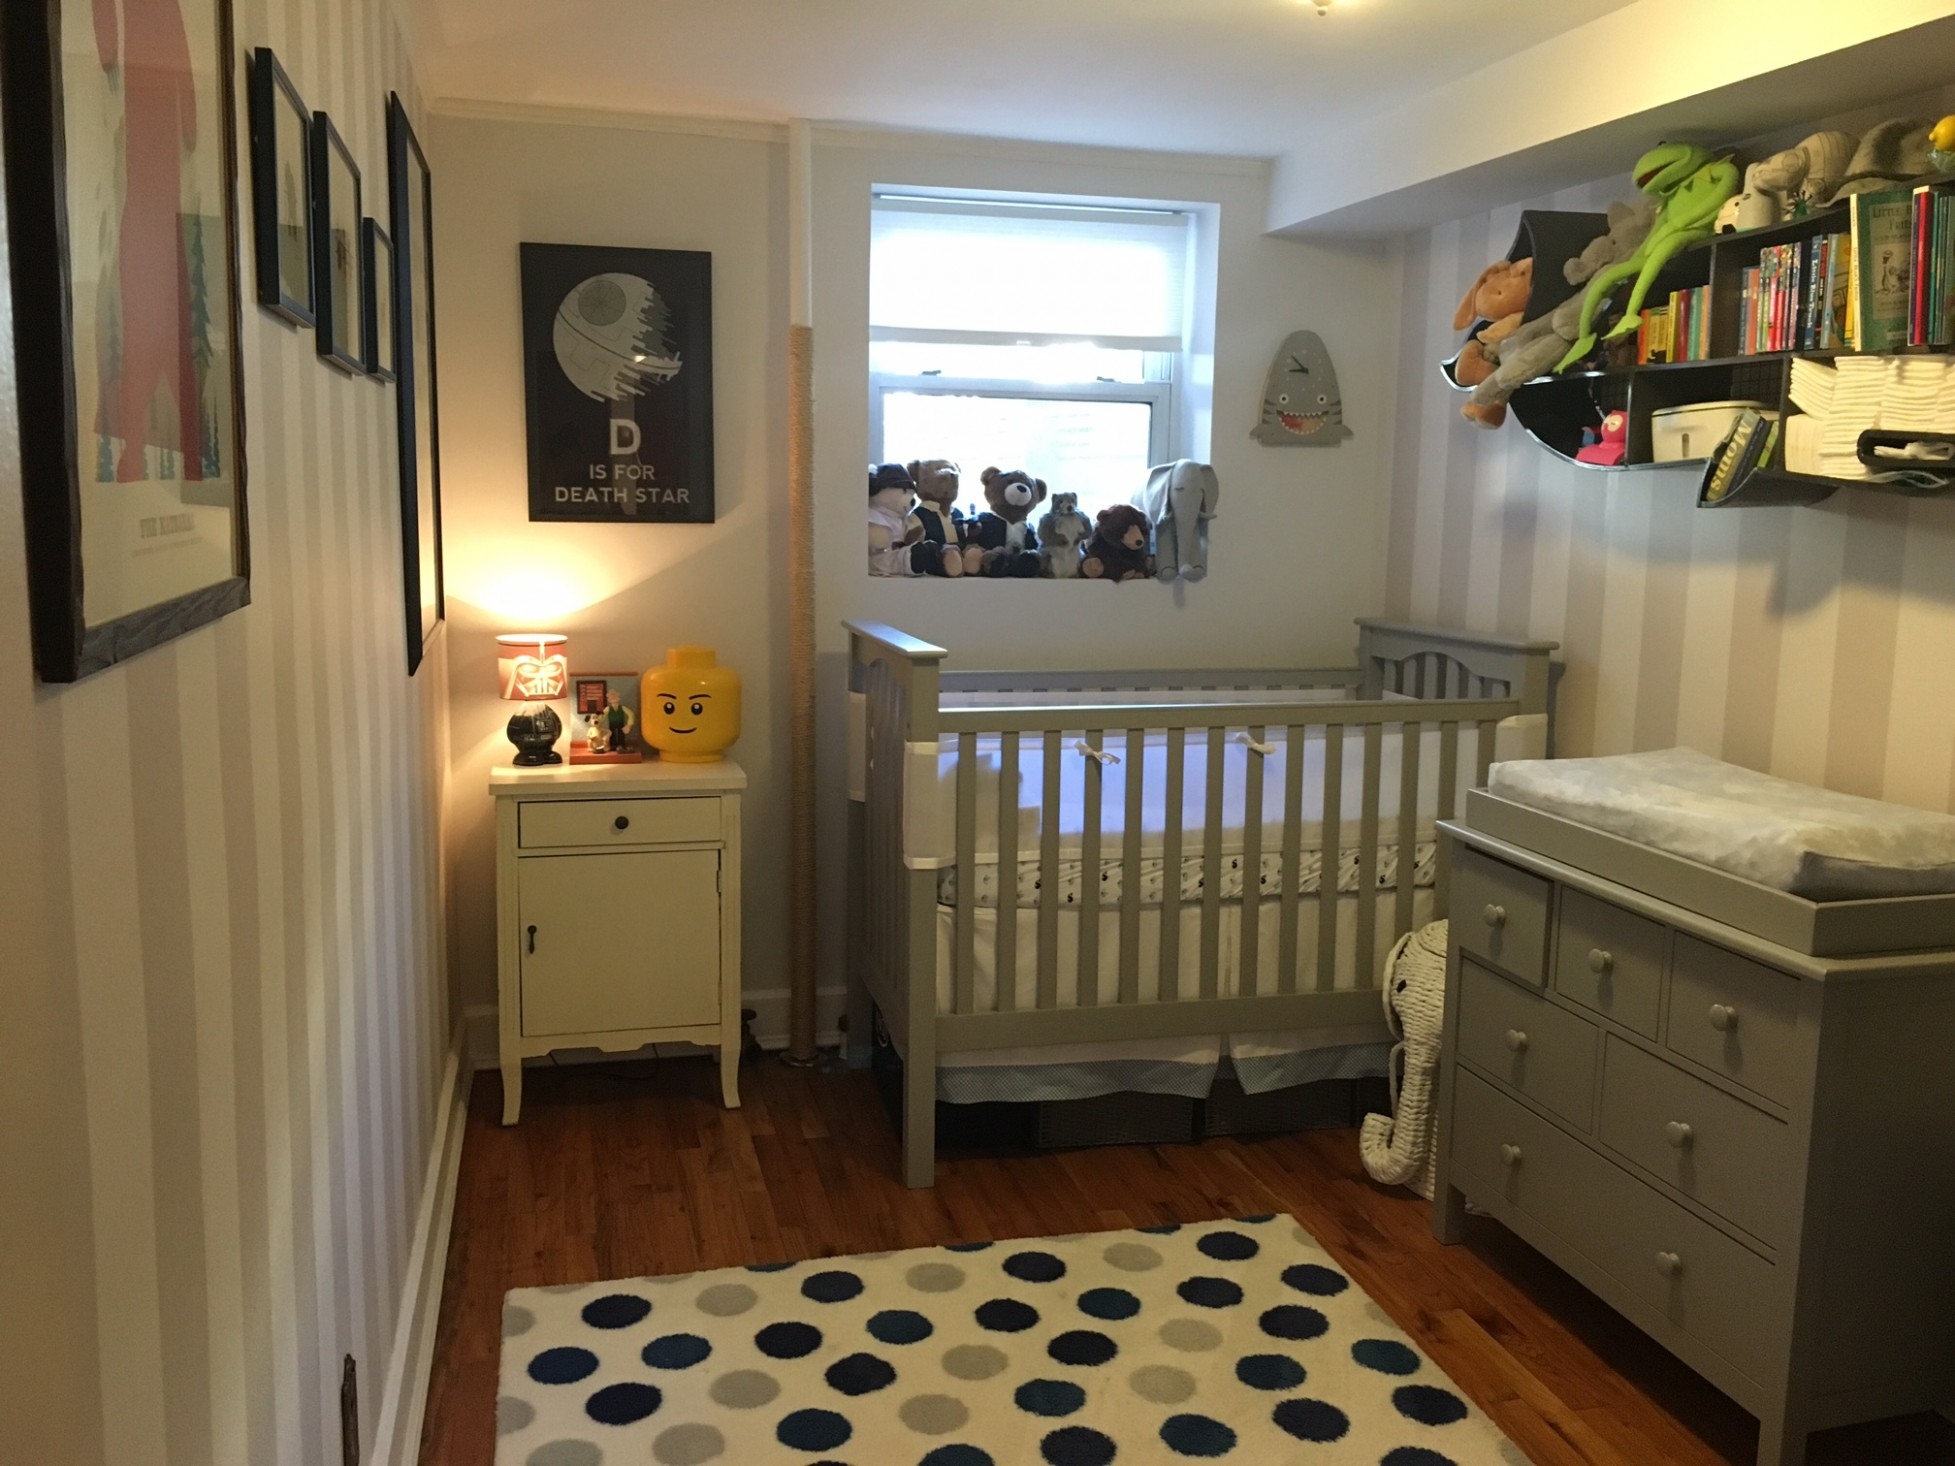 Nursery decorating ideas and tips: 11 things I wish I